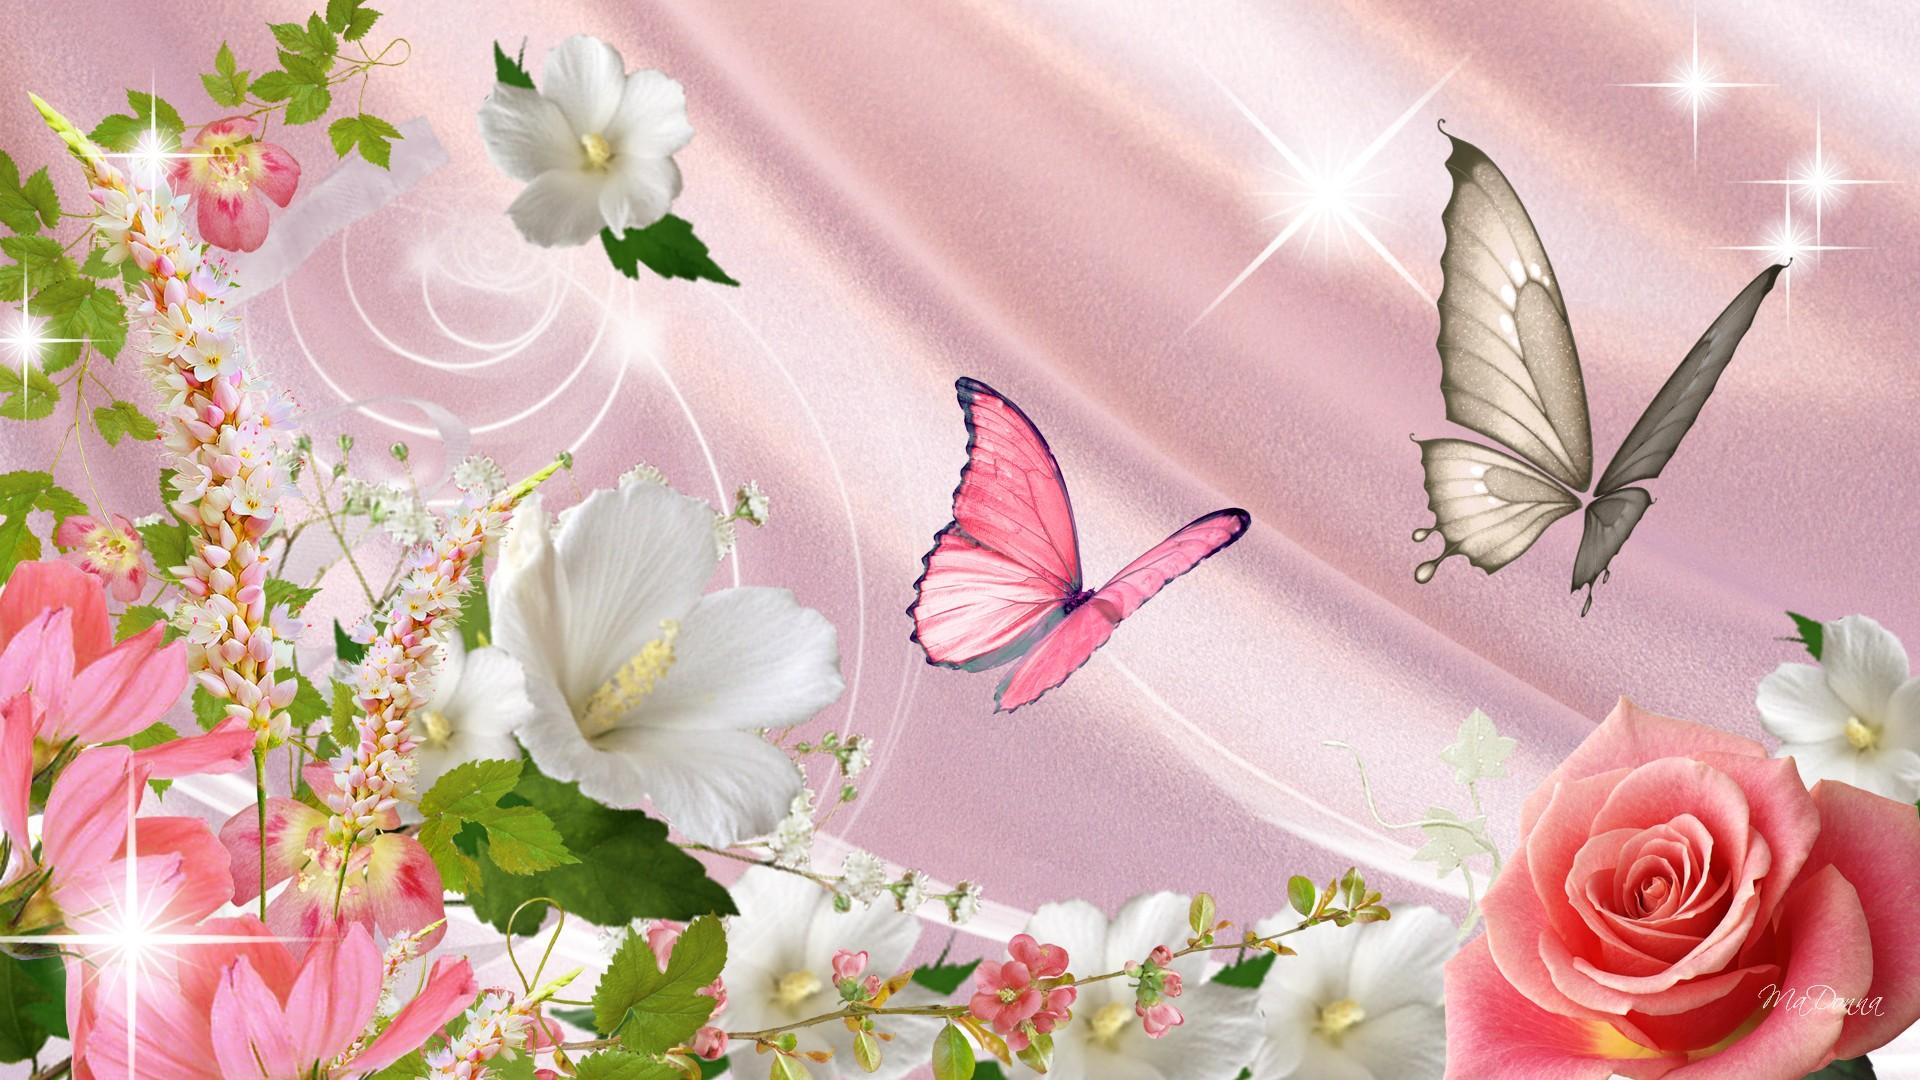 FunMozar Spring Flowers And Butterflies Wallpapers 1920x1080